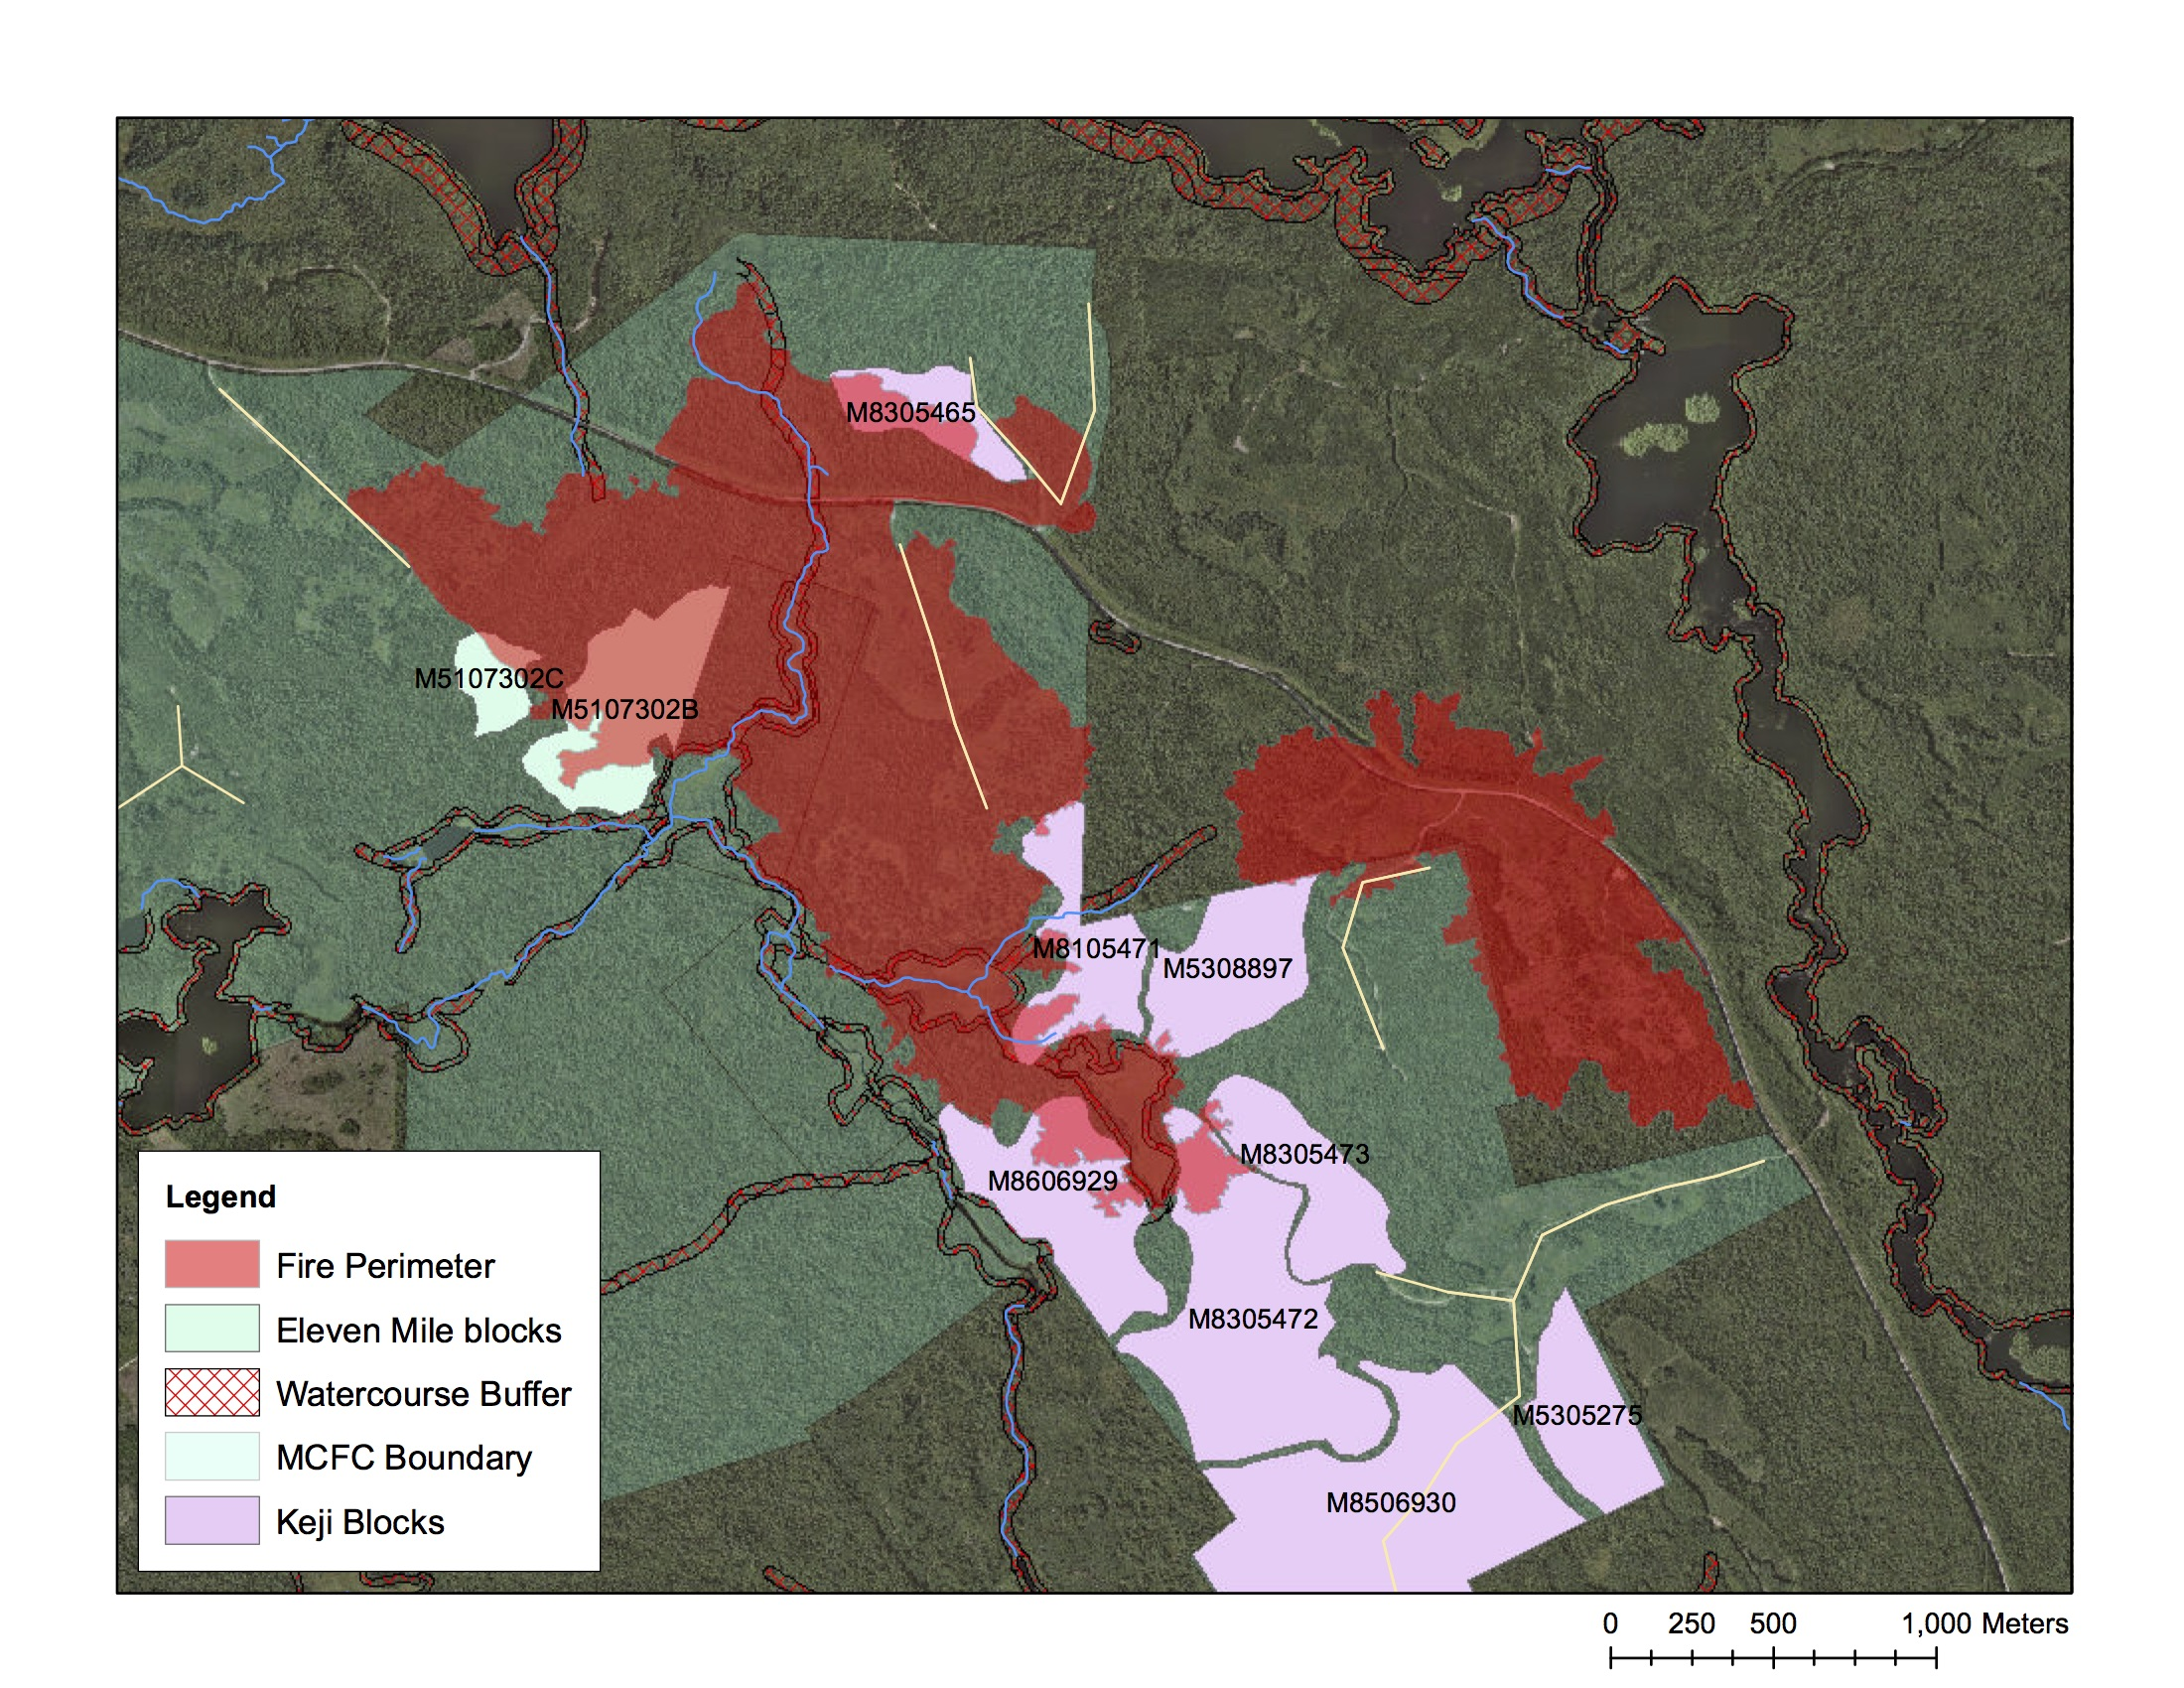 Overlay of the fire perimeter and harvest blocks scheduled for partial removals/silviculture in the upcoming year.